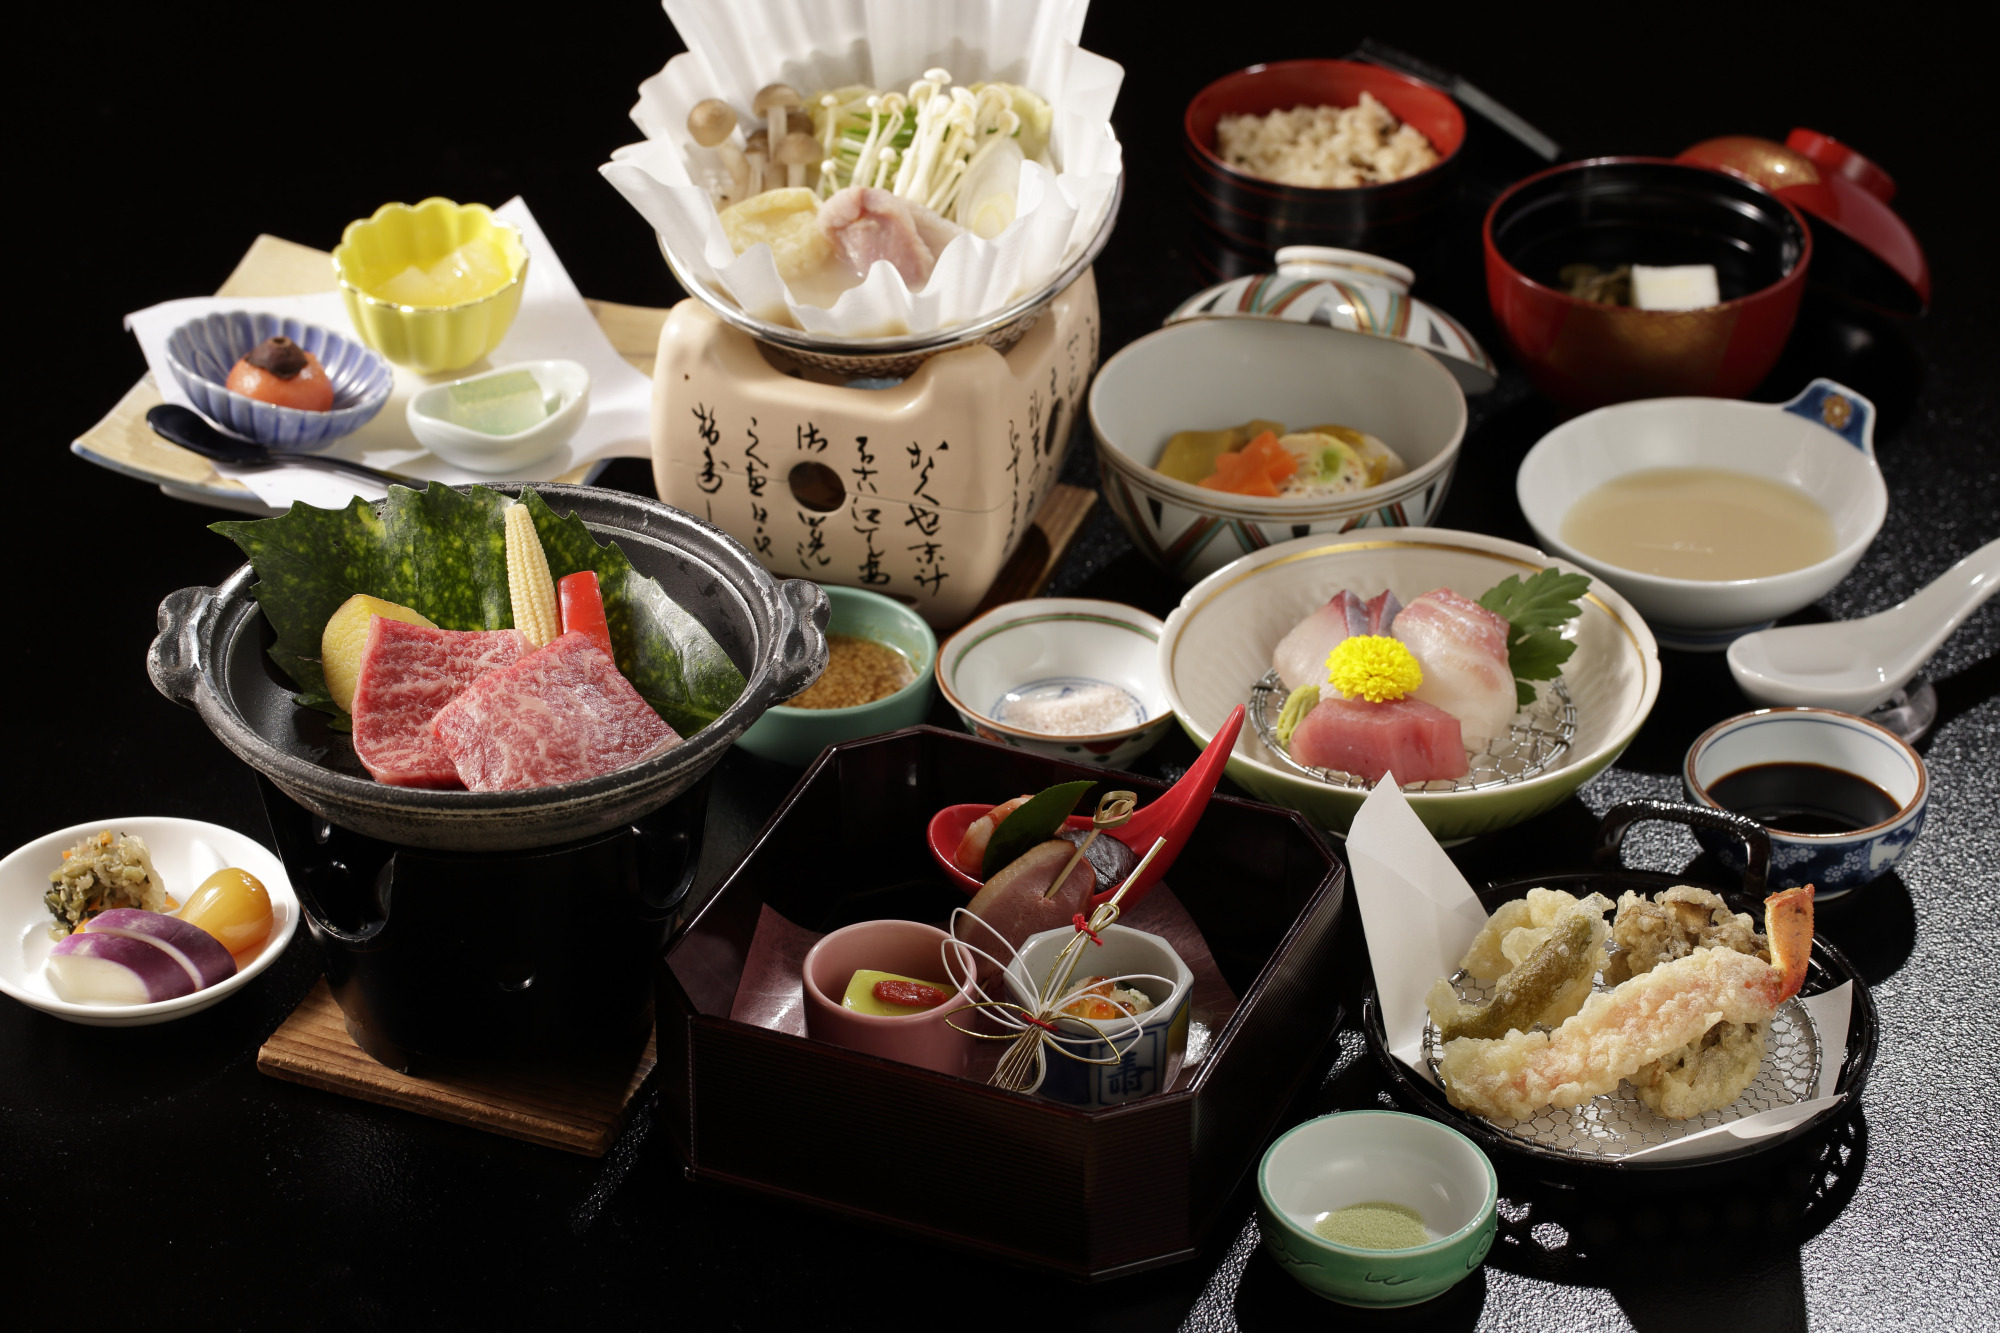 Enjoy a sumptuous kaiseki (traditional multicourse cuisine) feast that incorporates seasonal ingredients from both the mountains and sea.